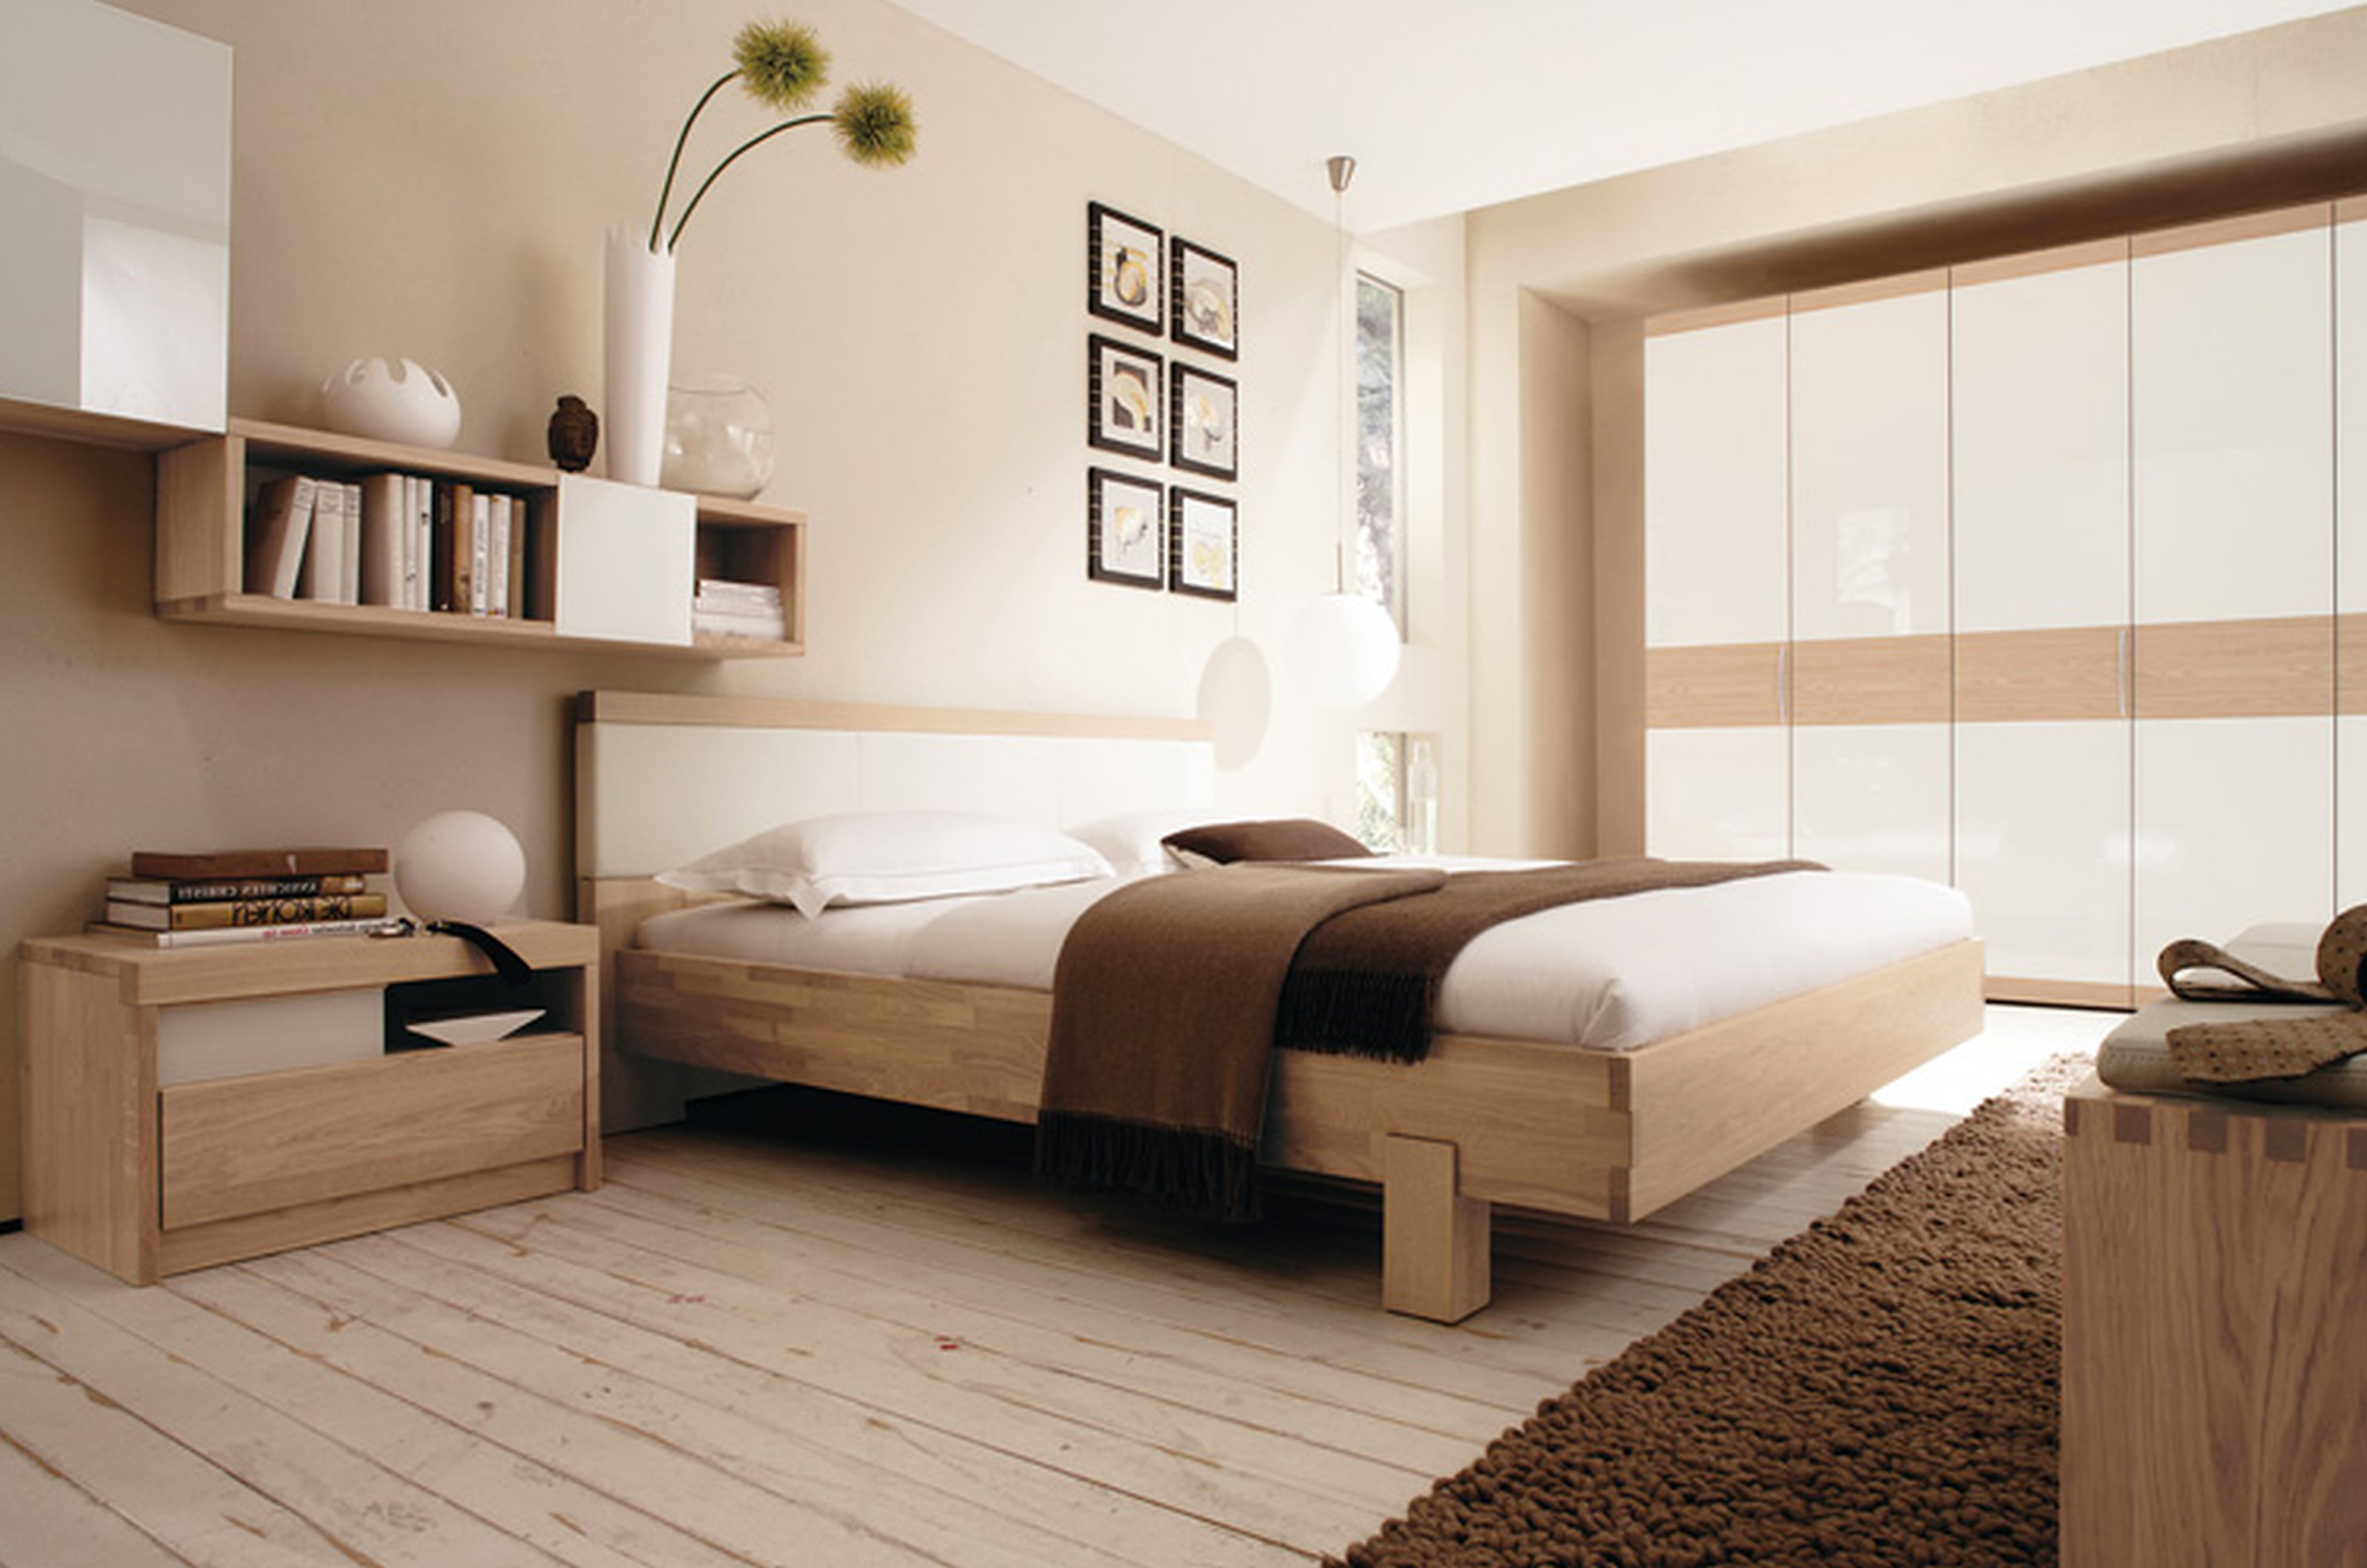 Bright Bedroom with Wooden Design 800.49 Kb